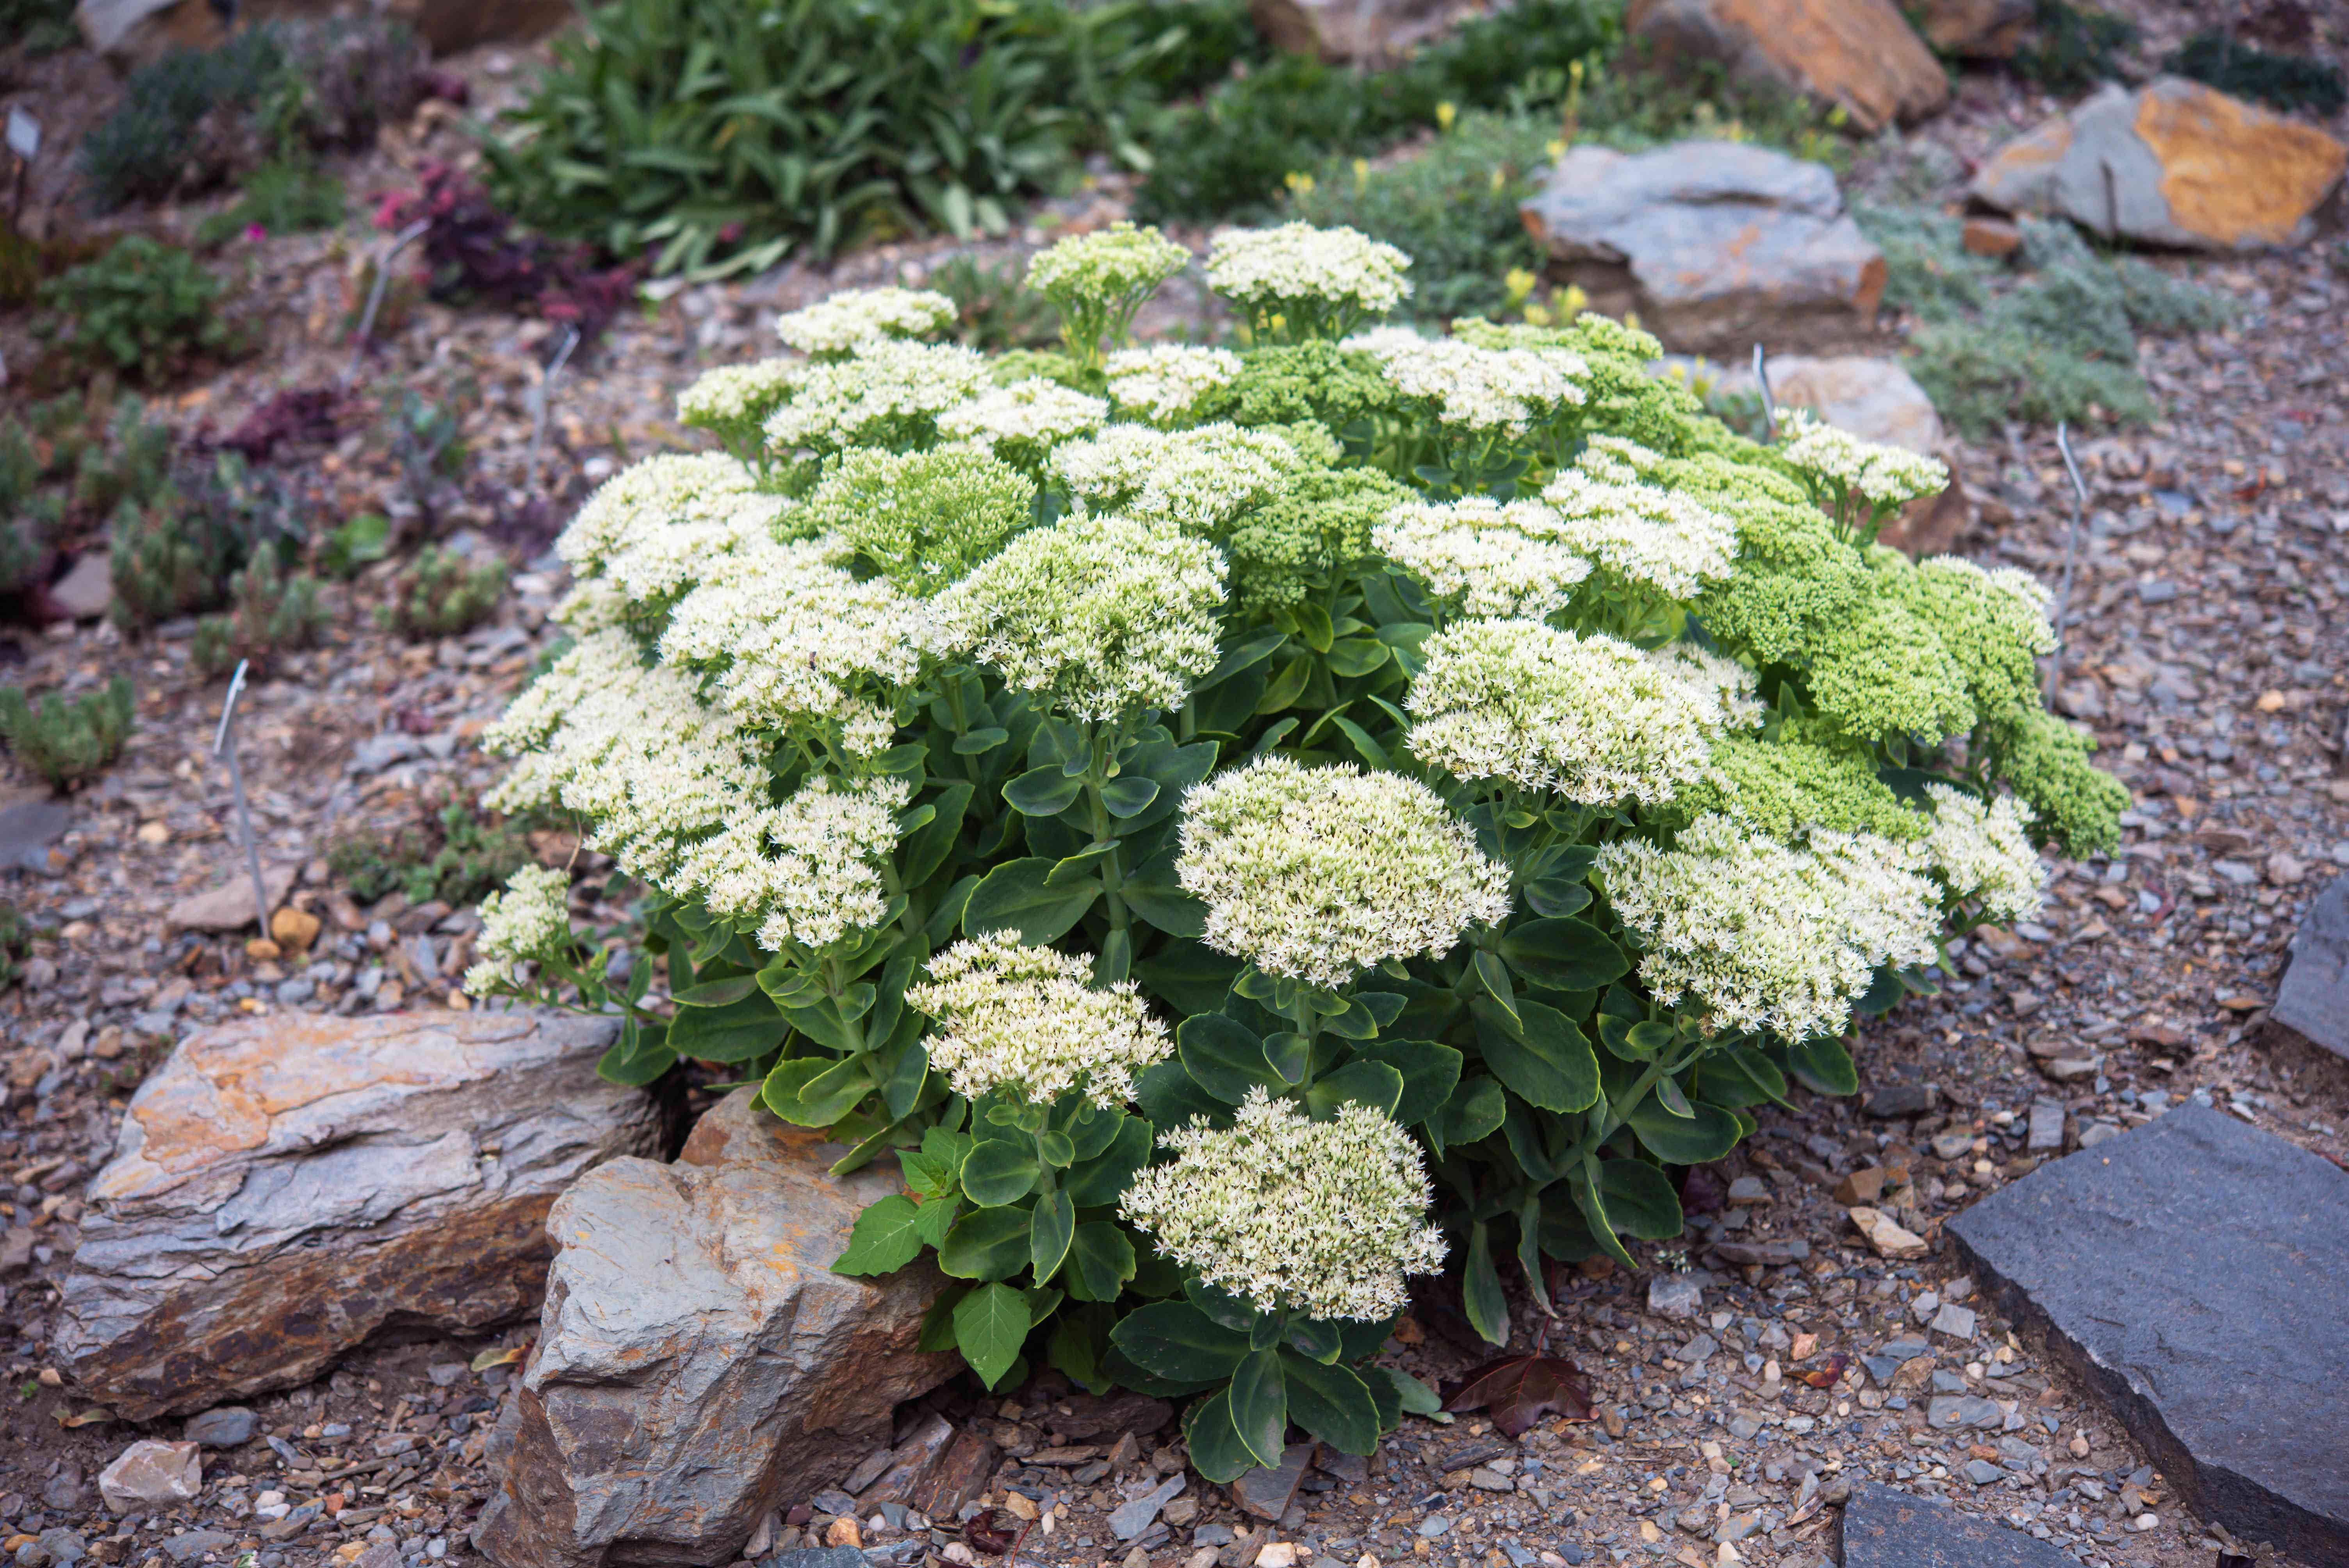 Sedum plant with small white flower clusters in middle of stones and small rocks